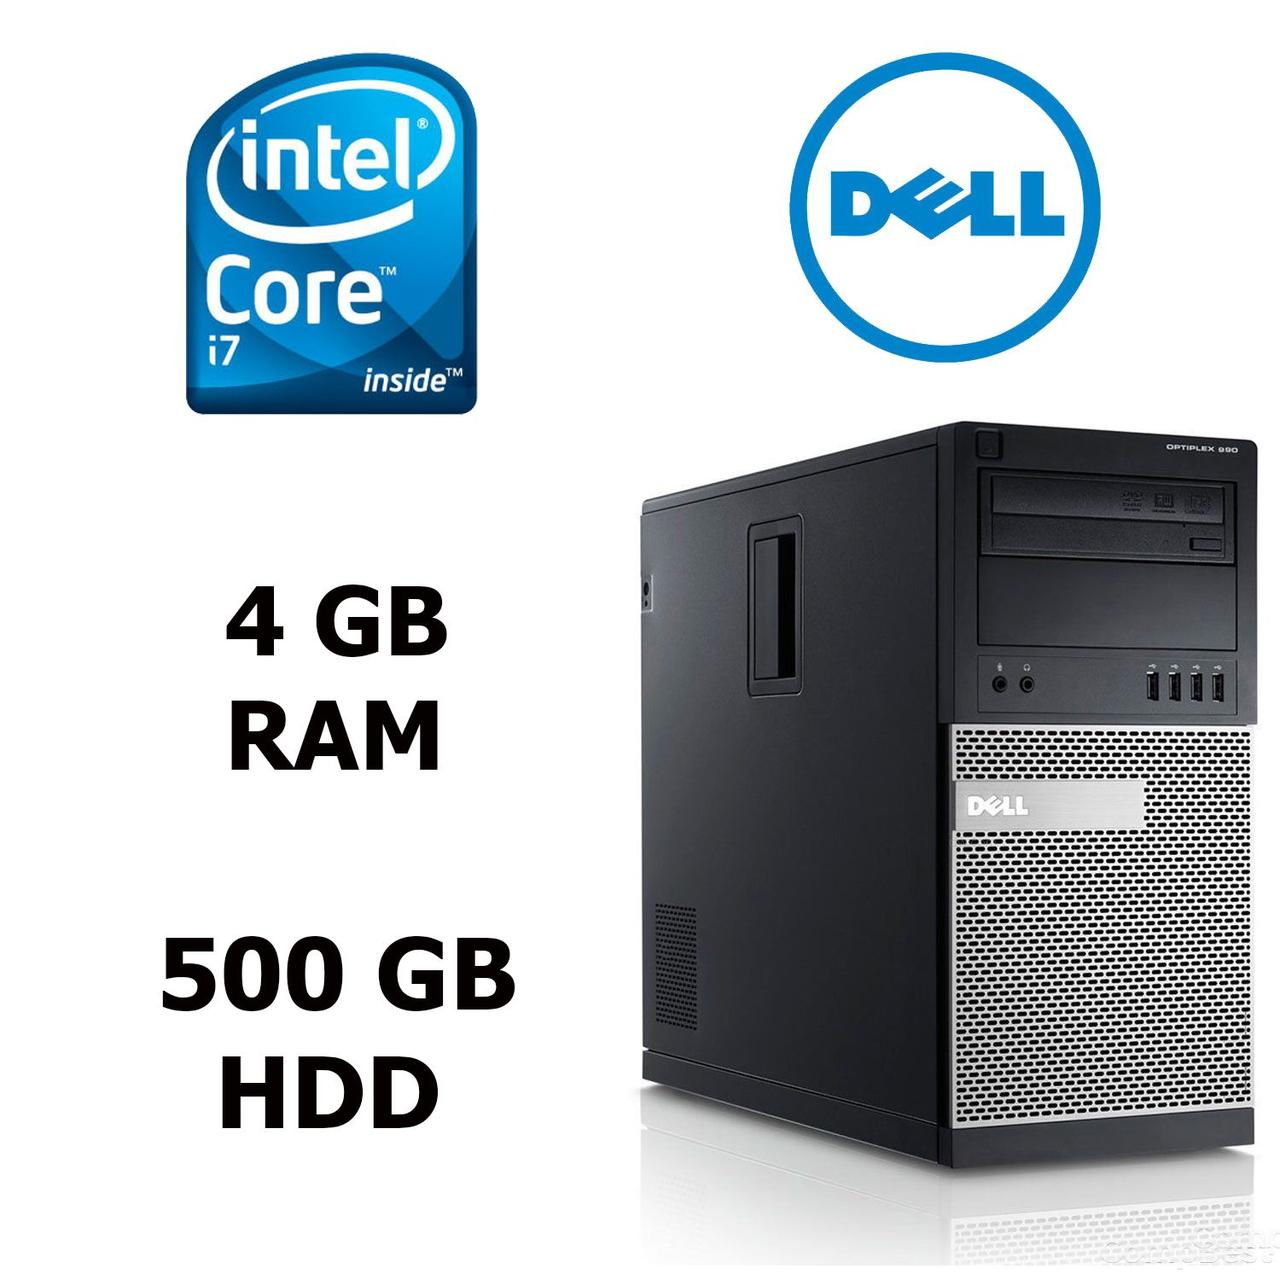 Dell Optiplex 990 Tower / Intel Core i7-2600 (4(8) ядра по 3.4 - 3.8 GHz) / 4GB DDR3/ 500 HDD